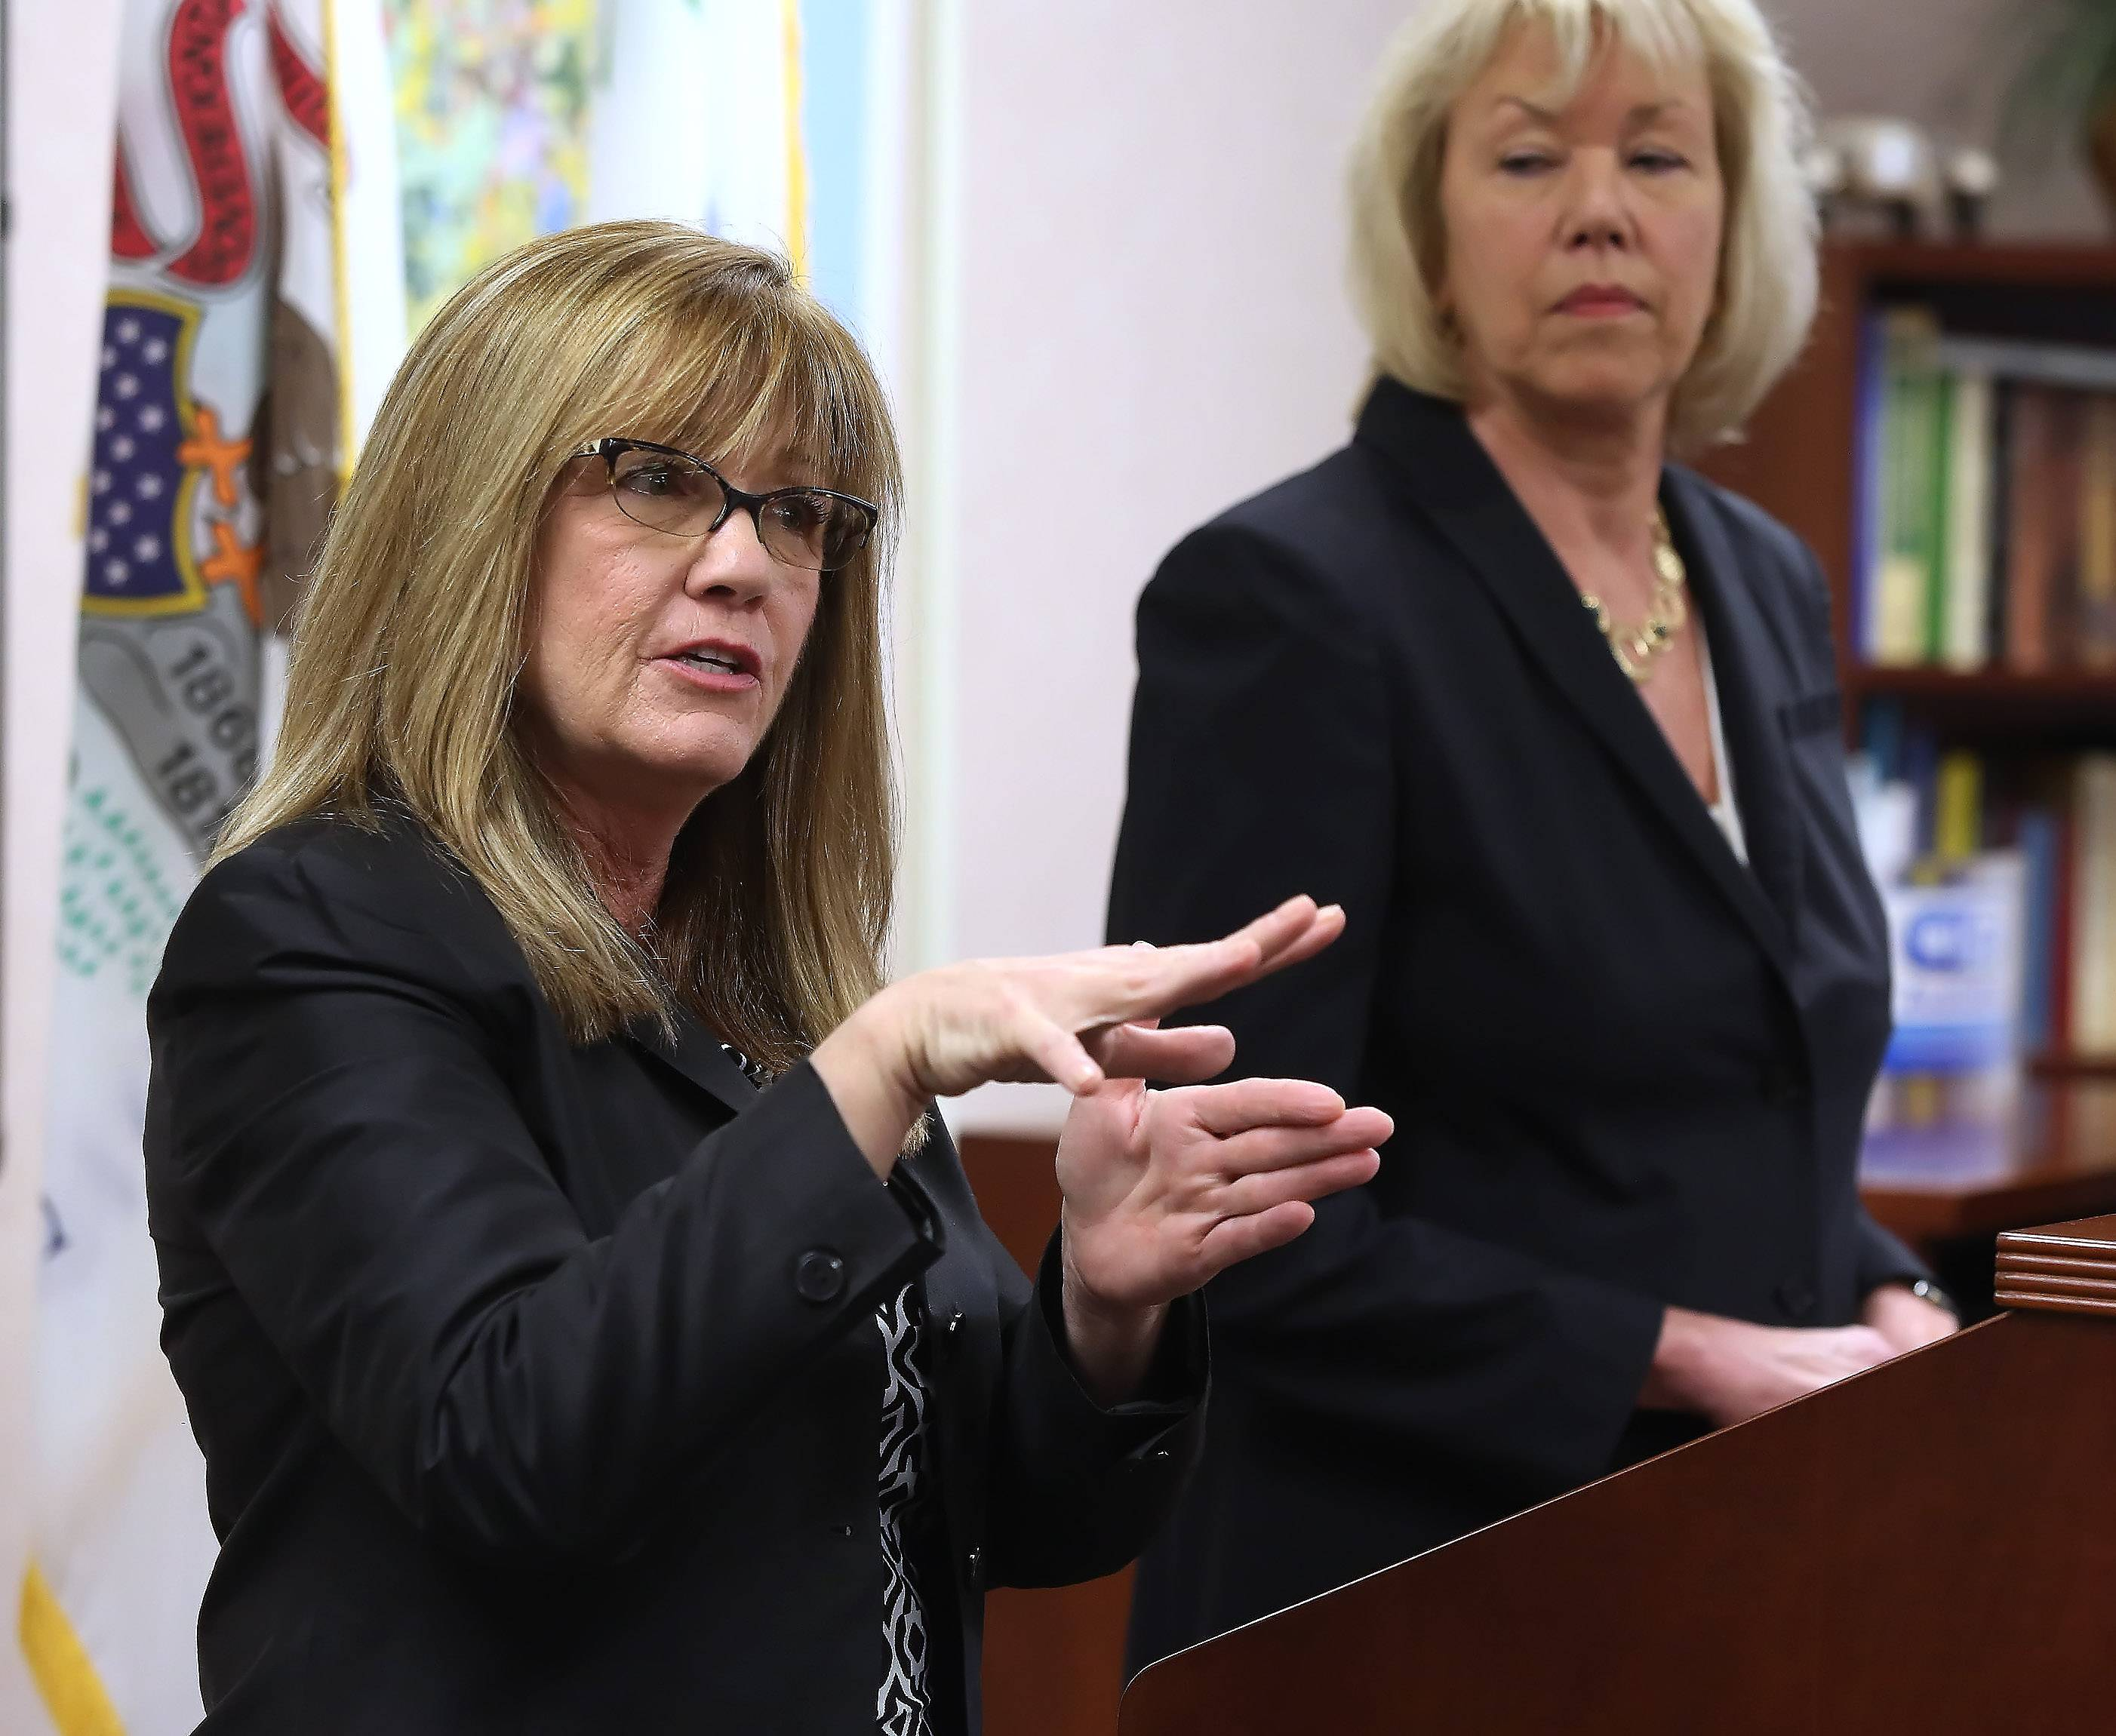 State Sens. Melinda Bush, left, and Julie Morrison have introduced separate bills making it easier to merge township governments and road districts.